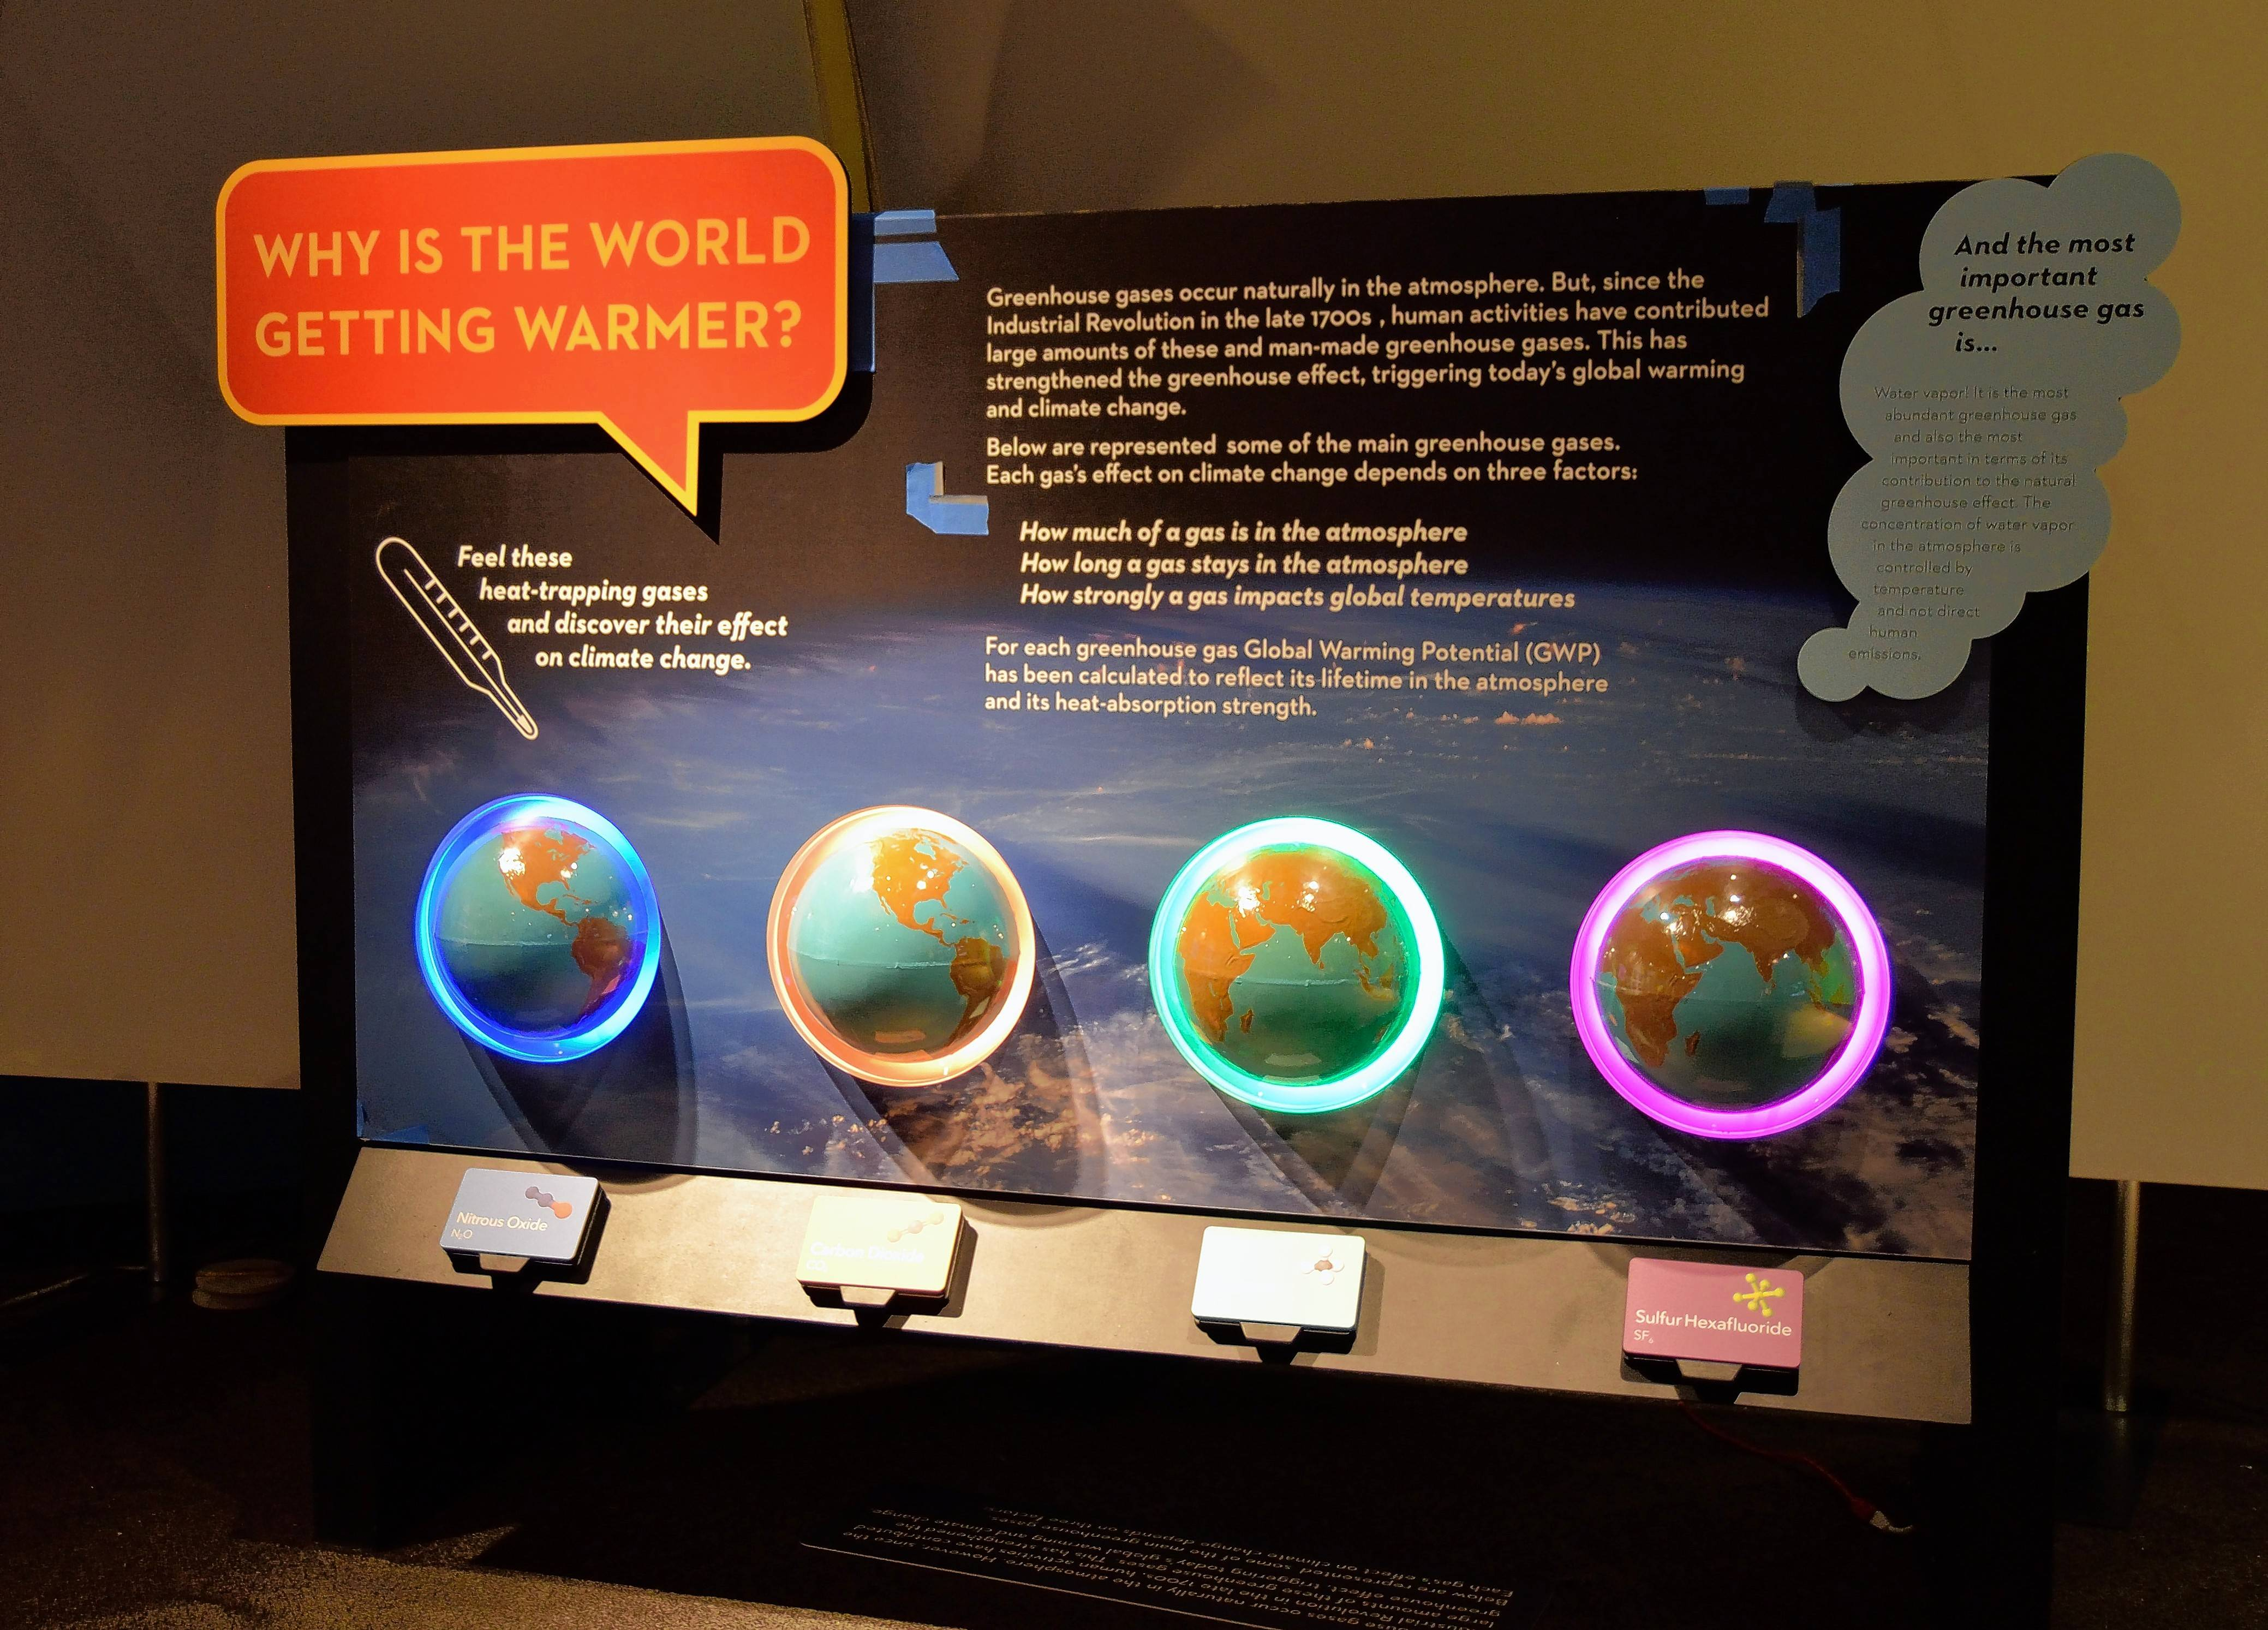 """Weather to Climate: Our Changing World"" at the Peggy Notebaert Nature Museum helps educate visitors on the implications of climate change."